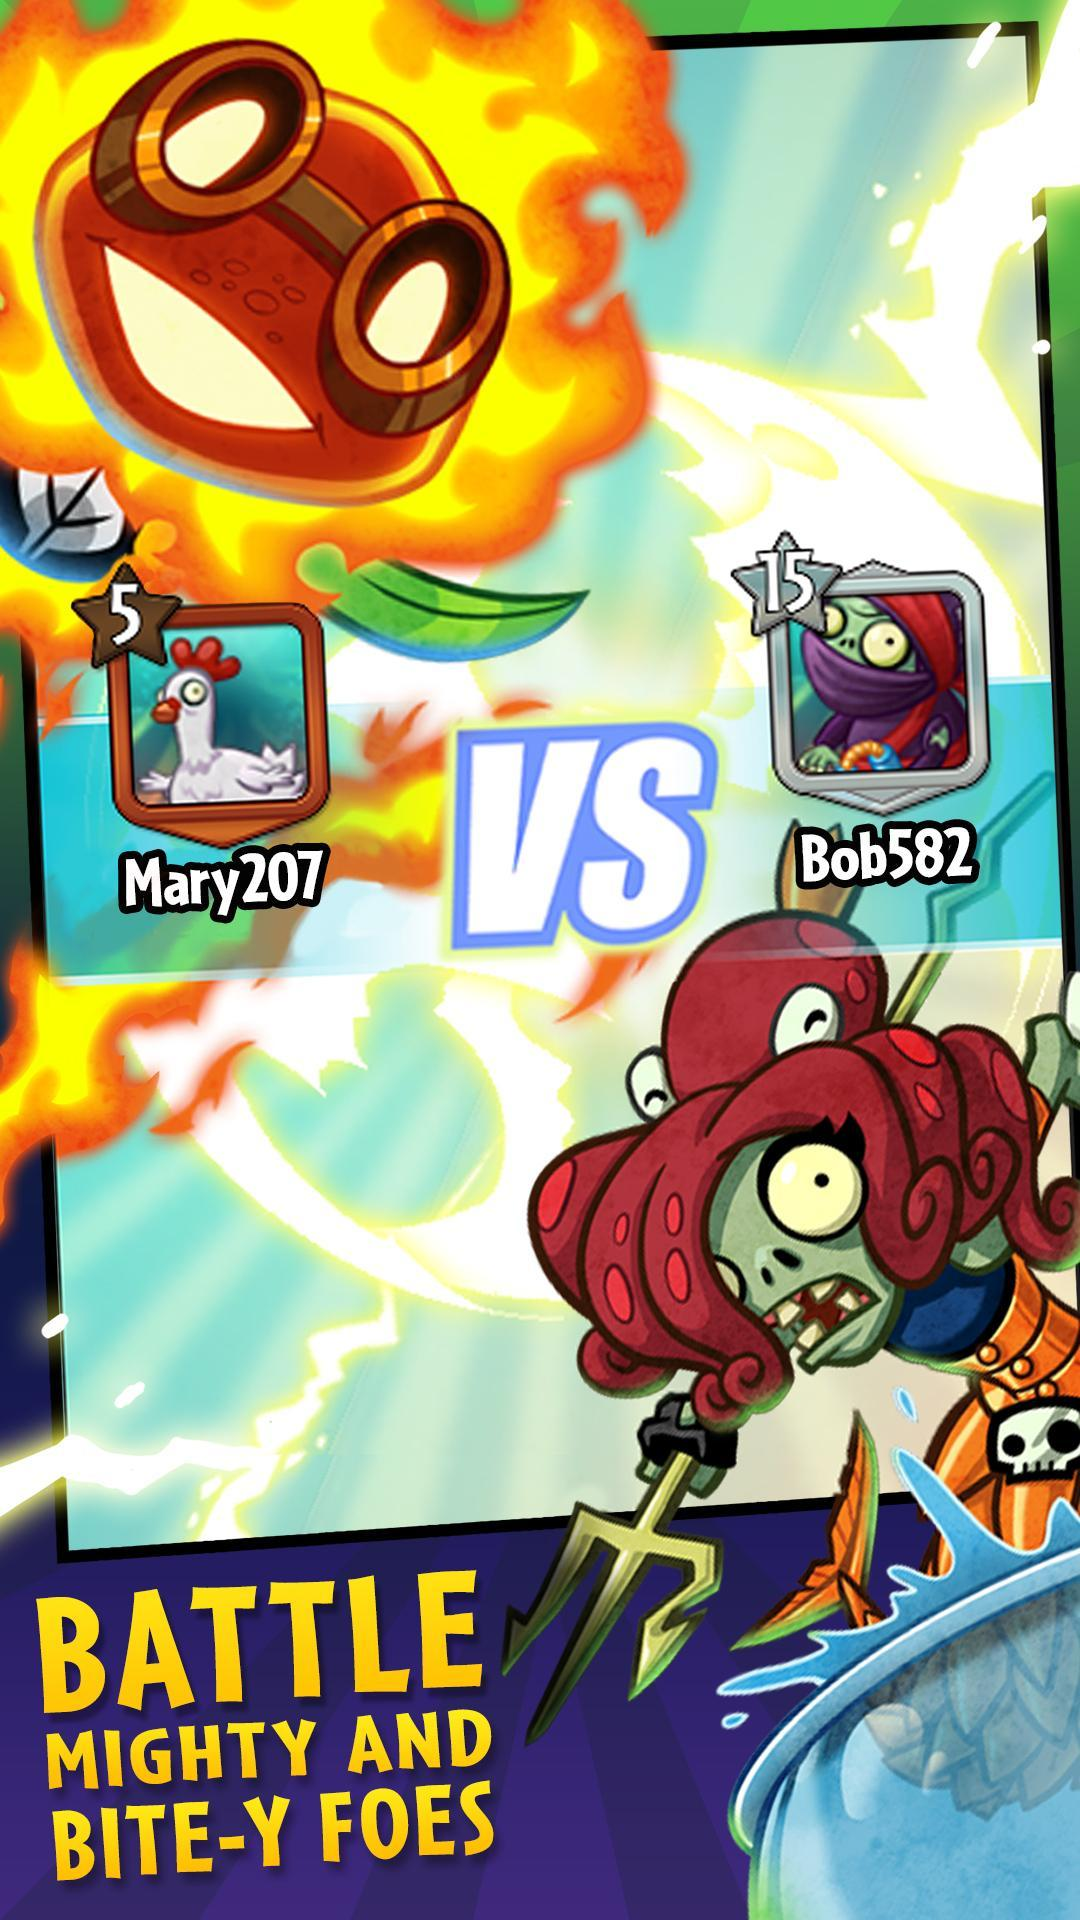 Roblox Zombie Heroes Plants Vs Zombies Heroes Apk Download Collect Heroes And Build Your Ultimate Battle Team